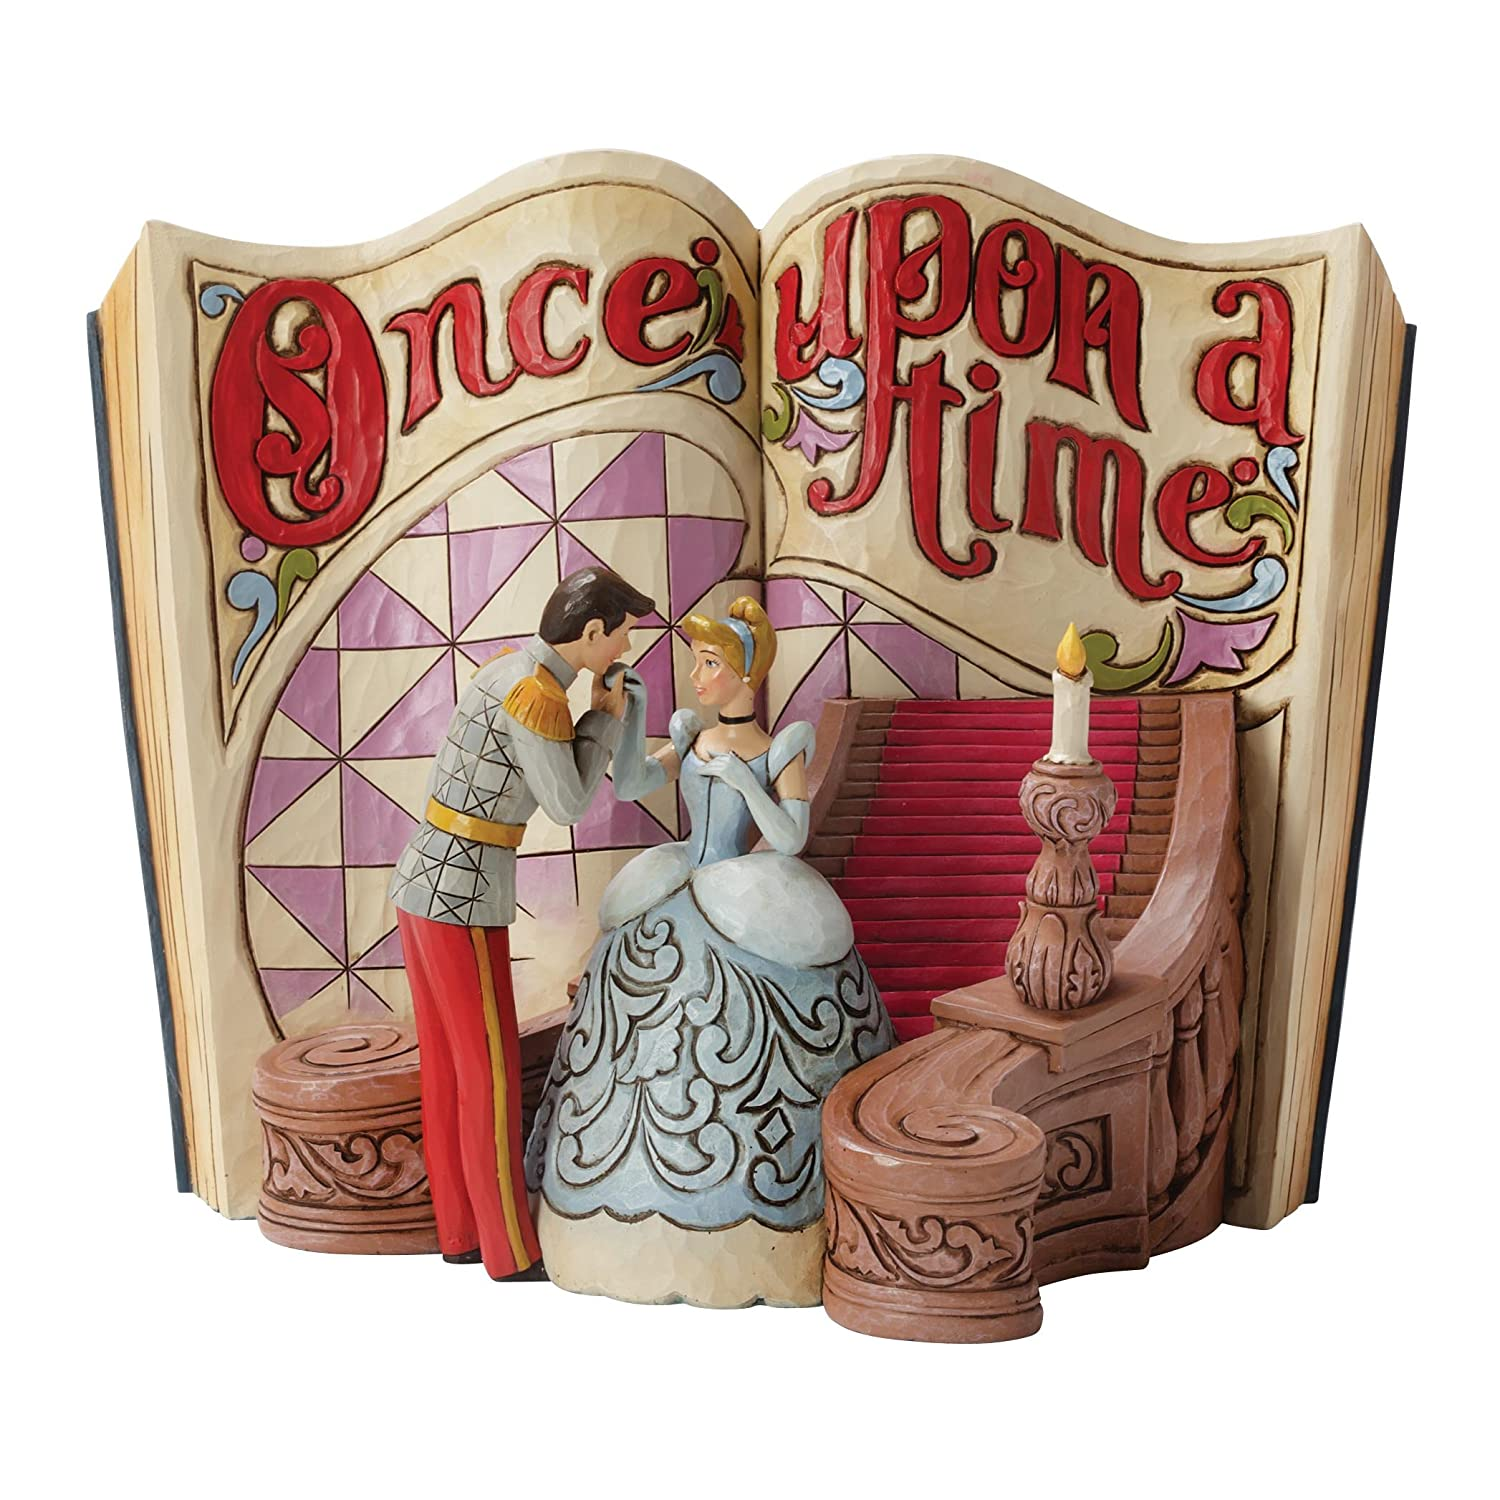 Disney Tradition 4031482 Once Upon a Time Cinderella Resina, Design di Jim Shore, 18 cm